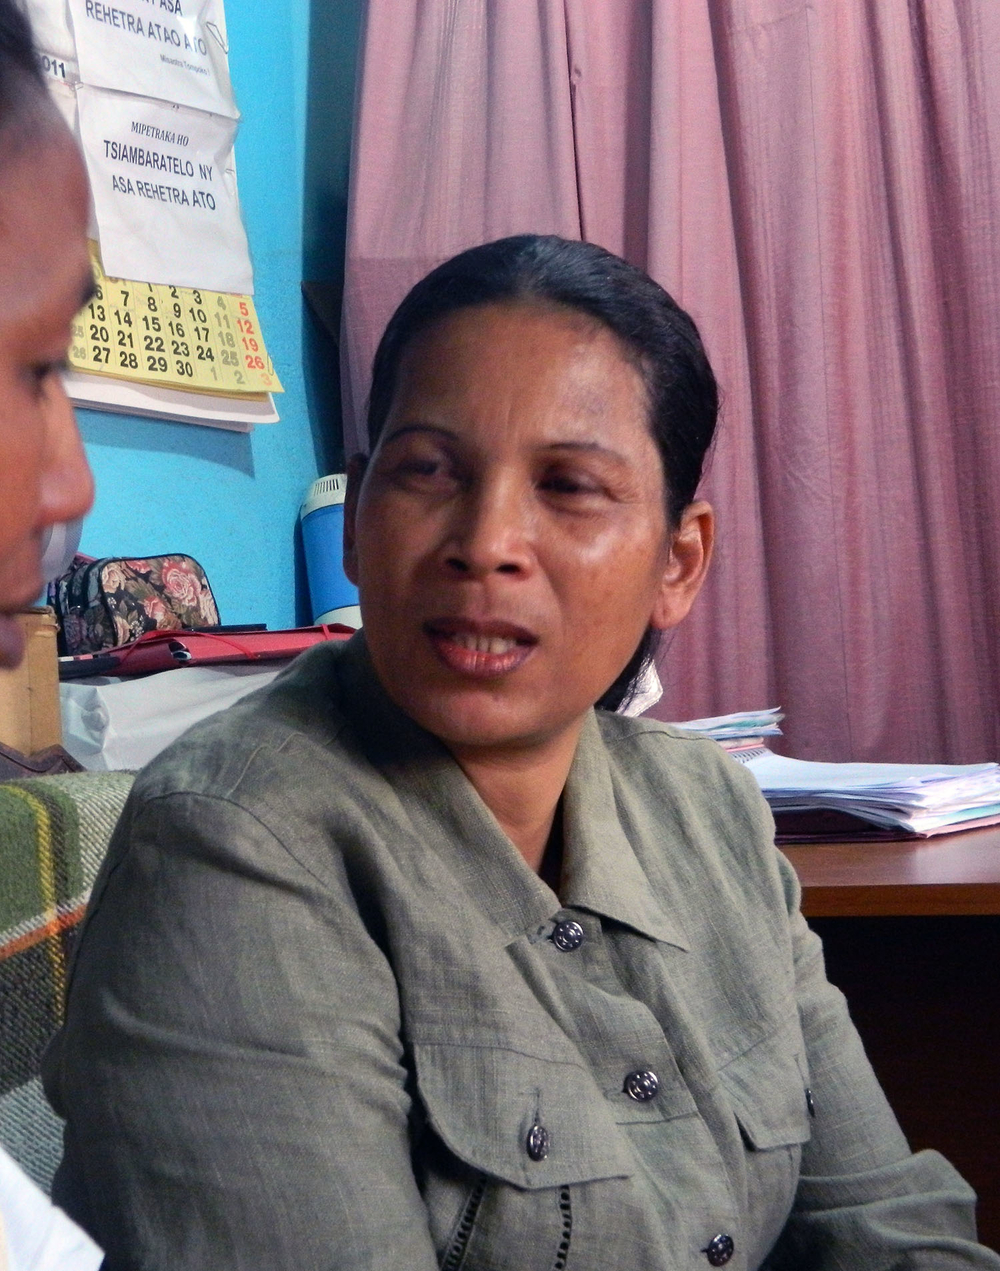 Esther Vololona Razazarivola, head of the legal aid clinic in Manjakandriana, Madagascar